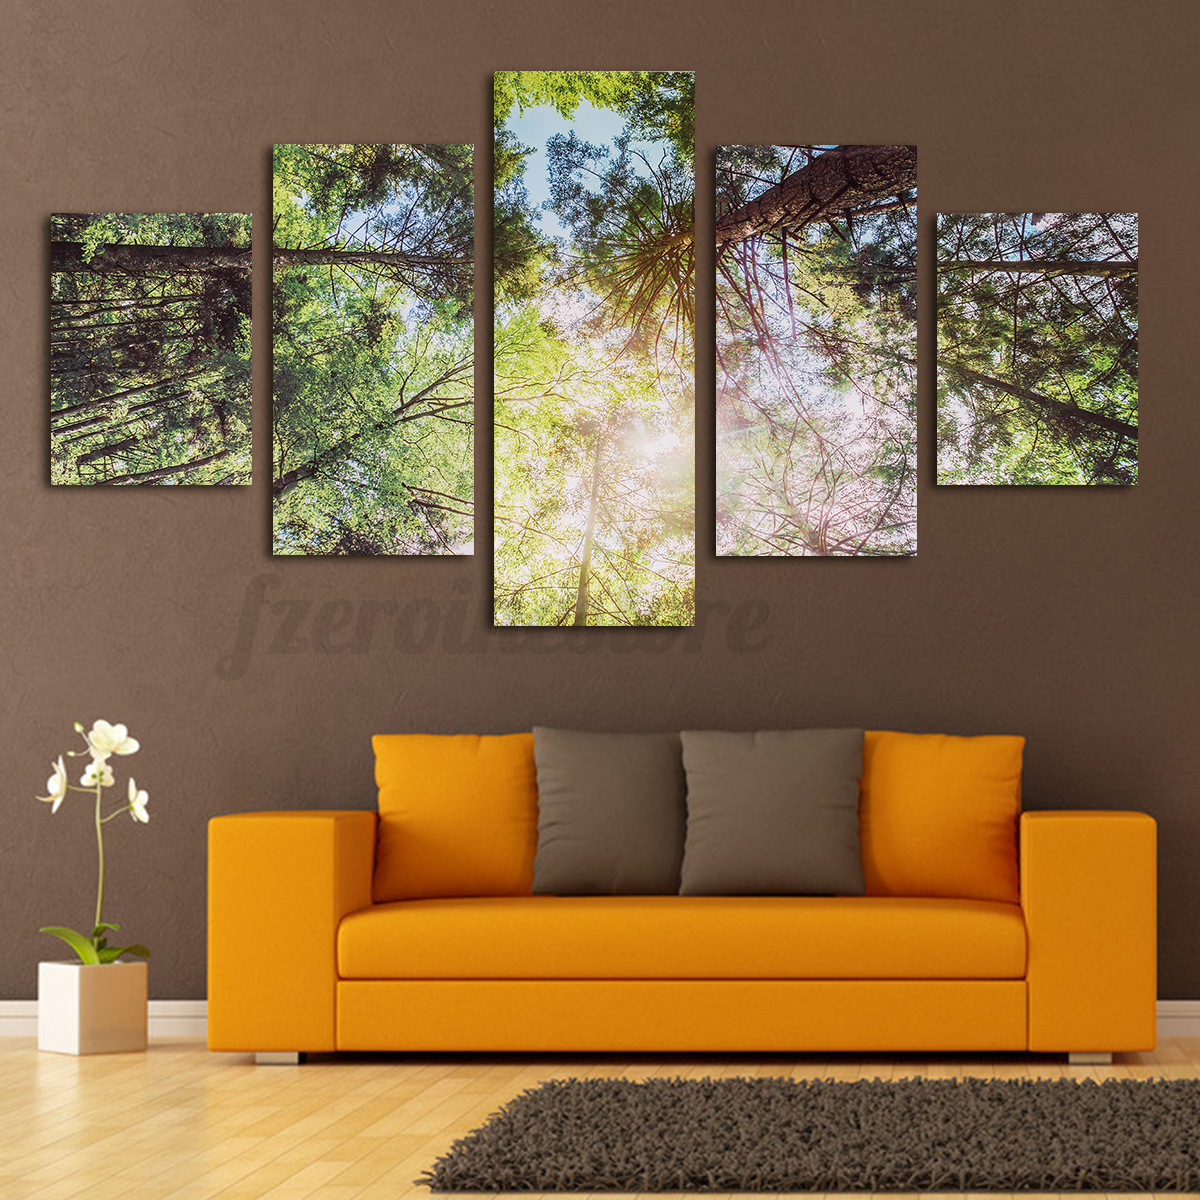 5tlg xxl leinwand bilder kunstdruck wald sonnen wandbild bild wand modern deko ebay. Black Bedroom Furniture Sets. Home Design Ideas